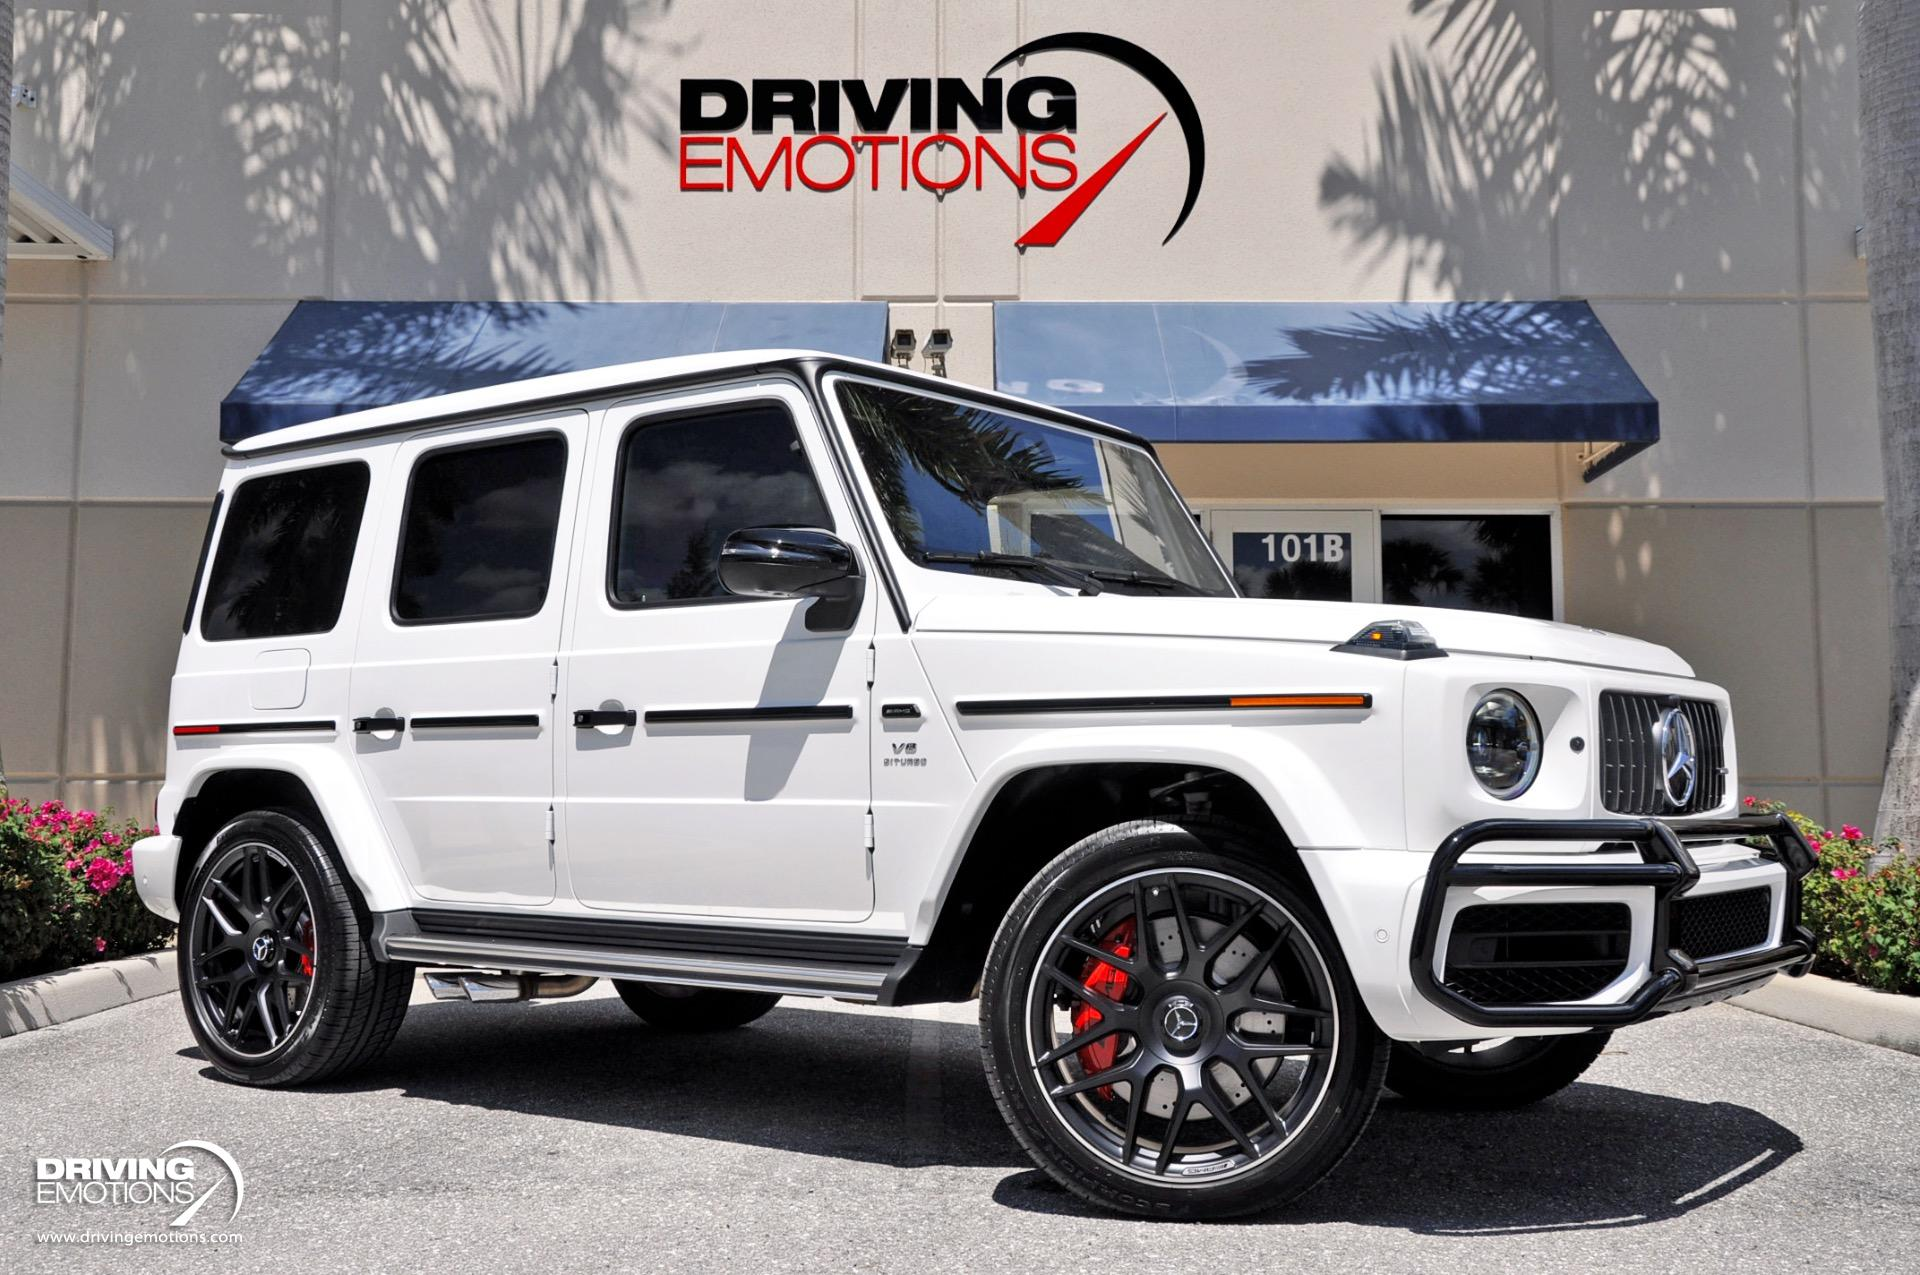 2019 Mercedes Benz G63 Amg Amg G 63 V8 Biturbo Stock 6122 For Sale Near Lake Park Fl Fl Mercedes Benz Dealer